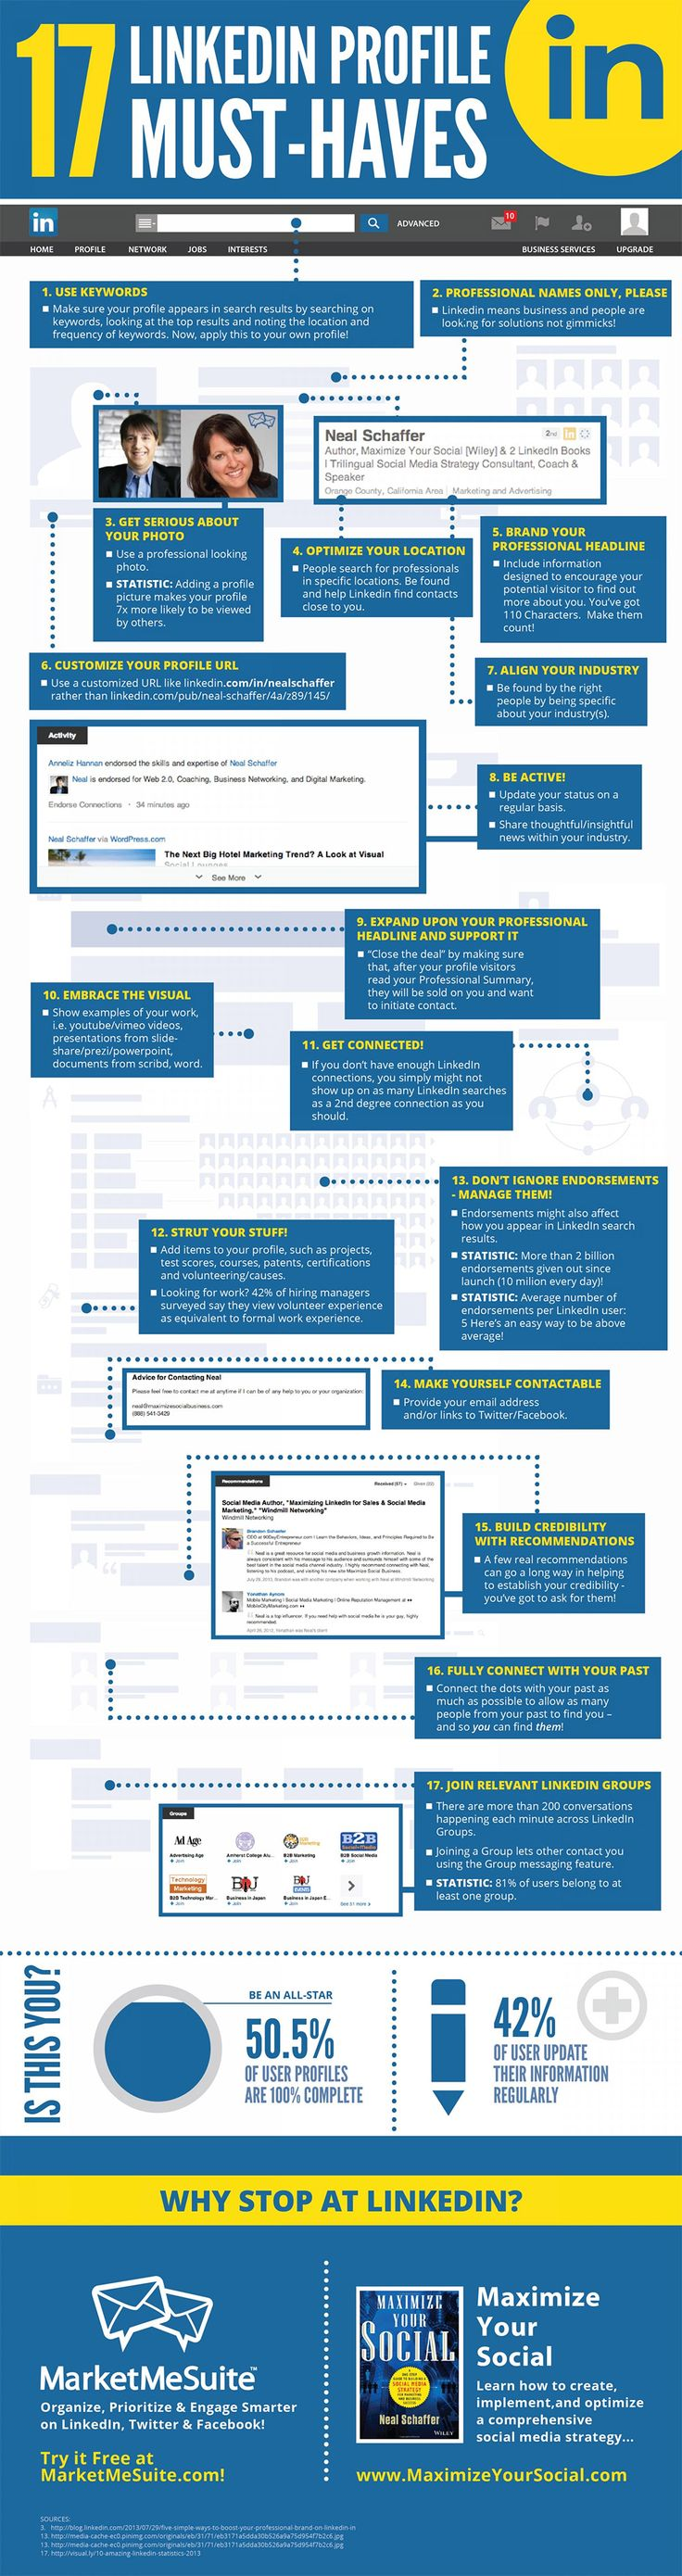 161 best linkedin marketing images on pinterest social media 17 must have features on your linkedin profile infographic malvernweather Image collections